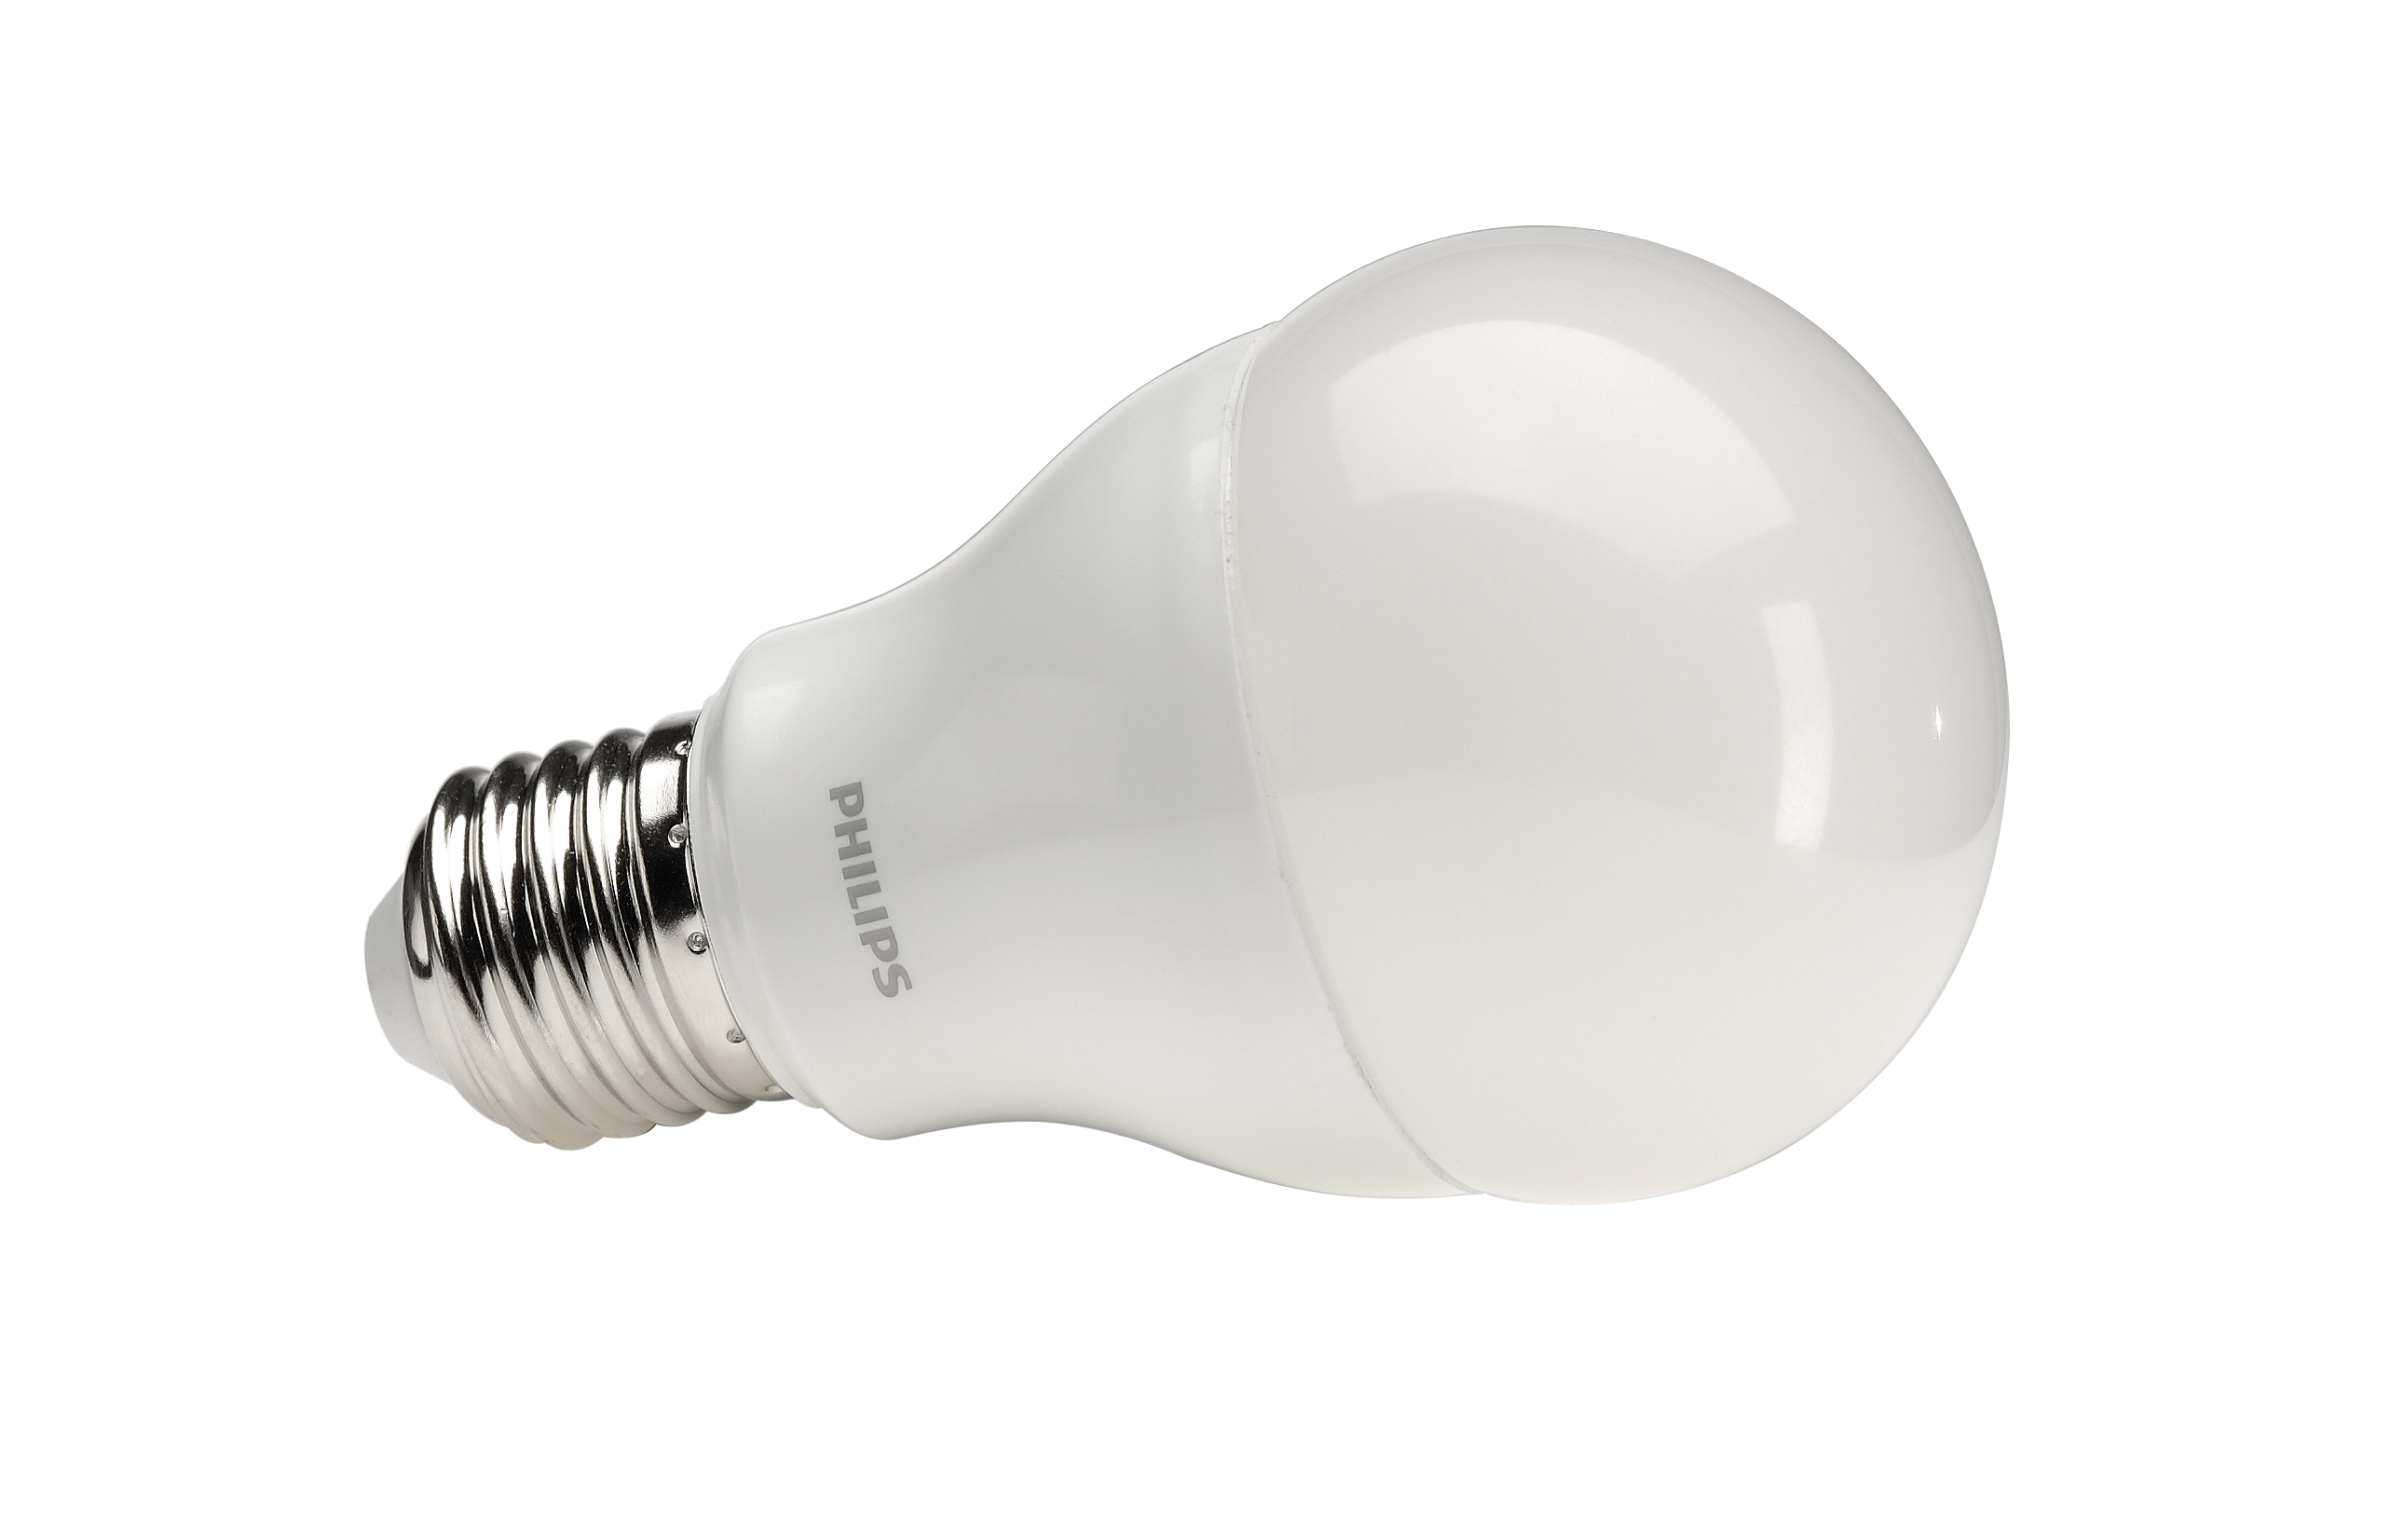 Philips E27 Corepro LED 10W dimbar